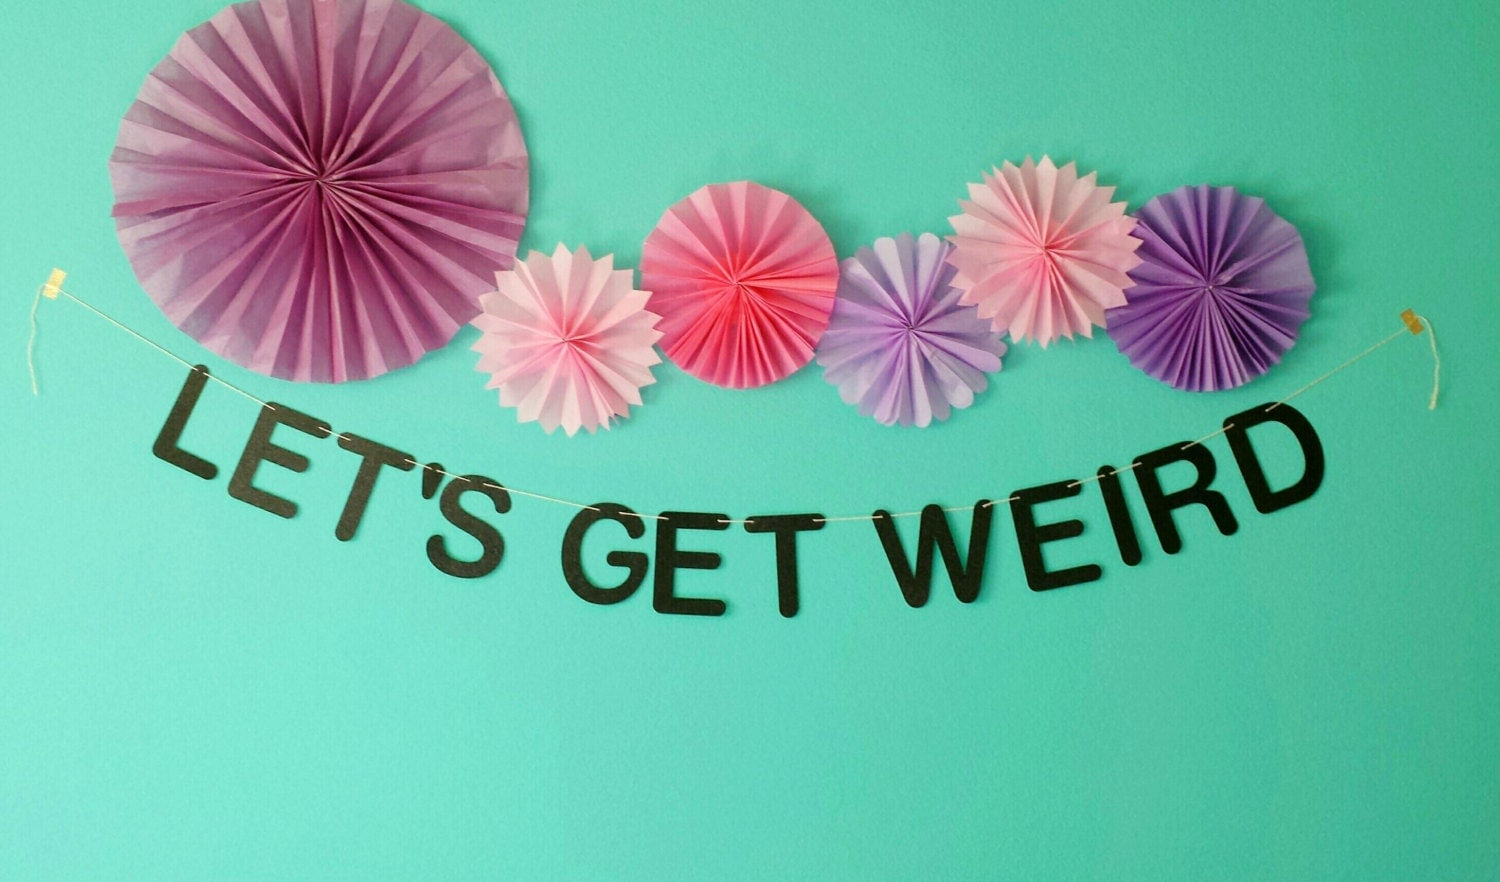 Lets get weird party banner gold glitter black zoom amipublicfo Gallery